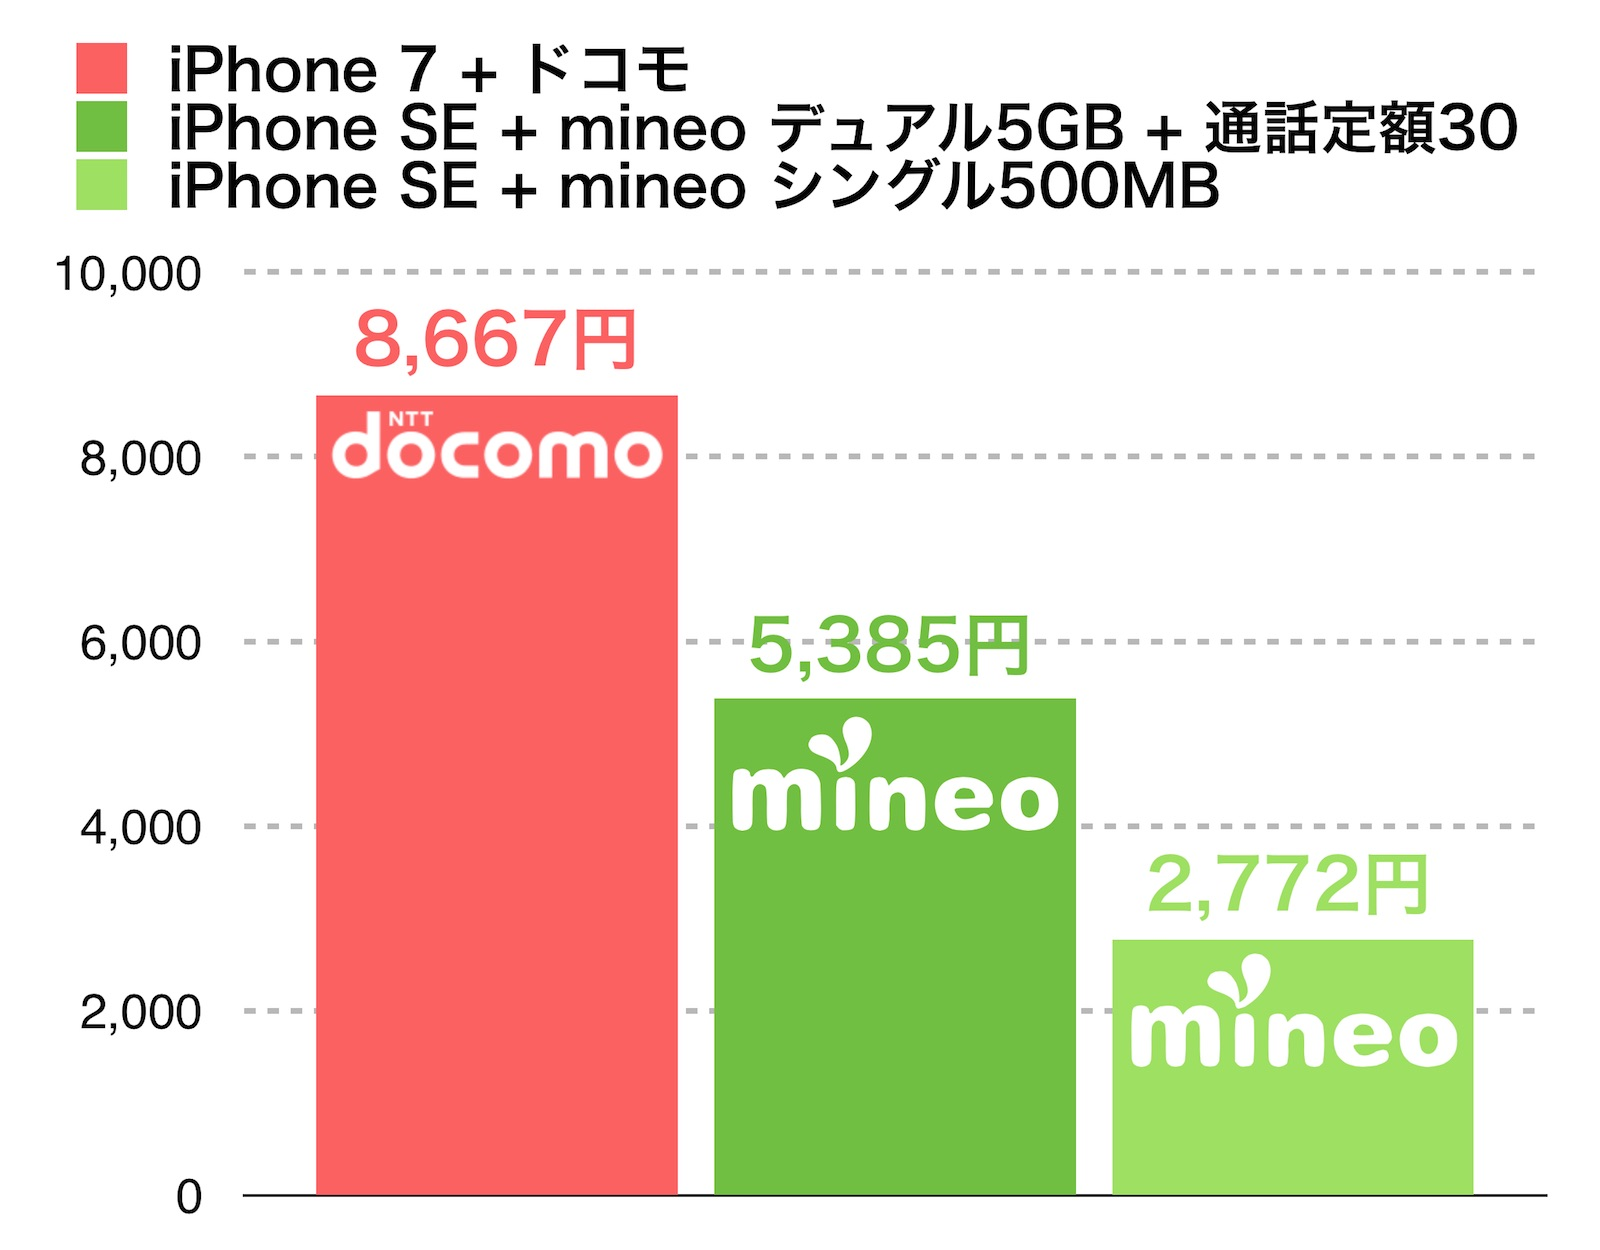 ドコモ iPhone 7 vs mineo iPhone SE